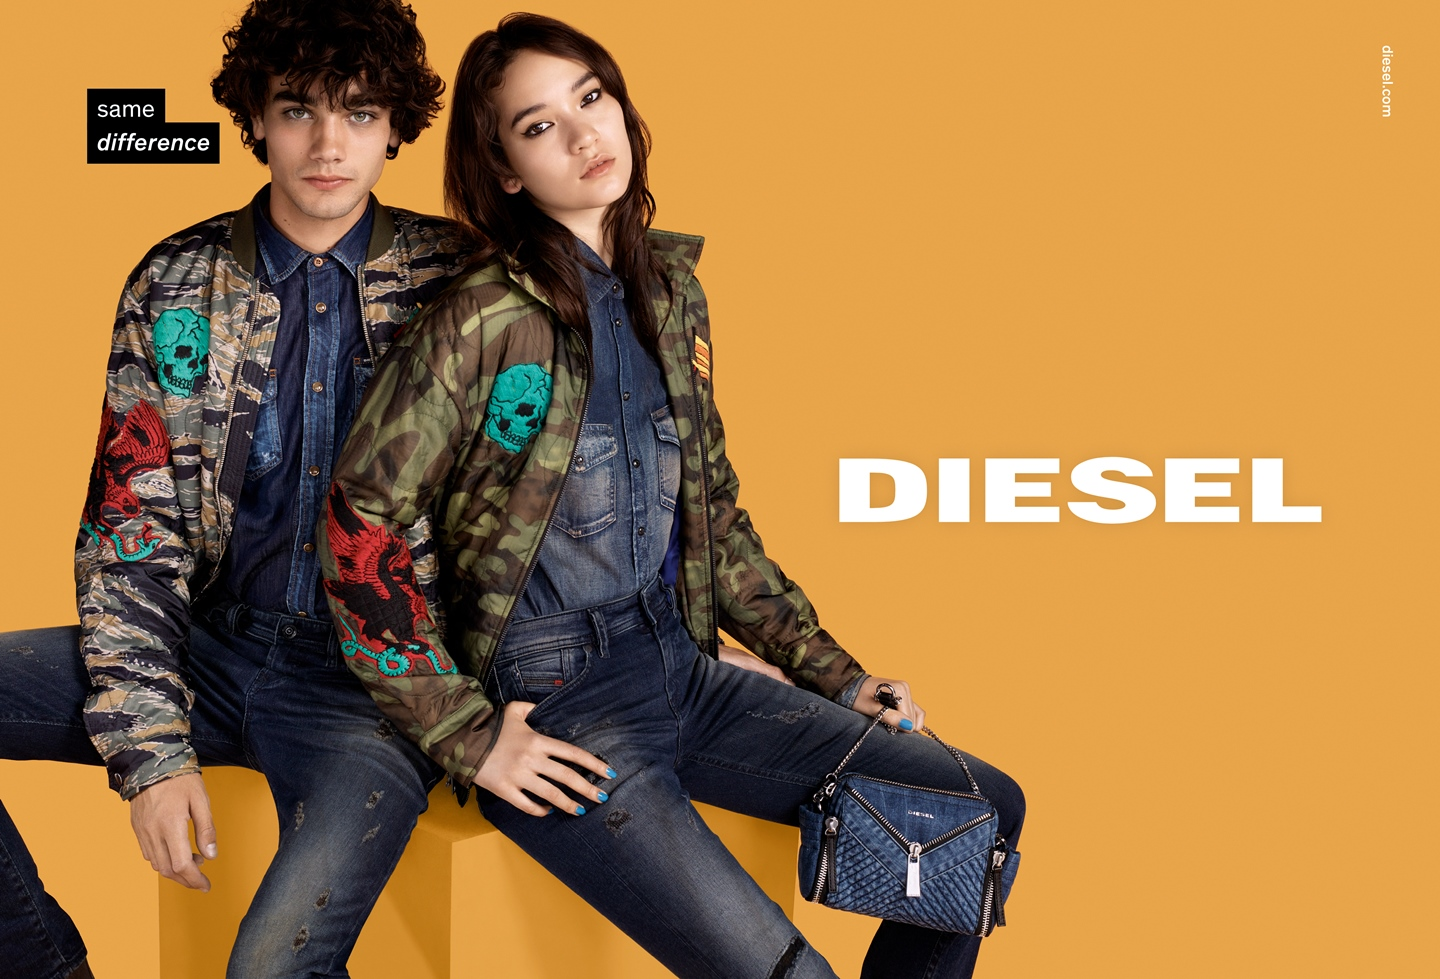 289209_623209_diesel_campaign_fw16_atl_military_couple_dps_highres